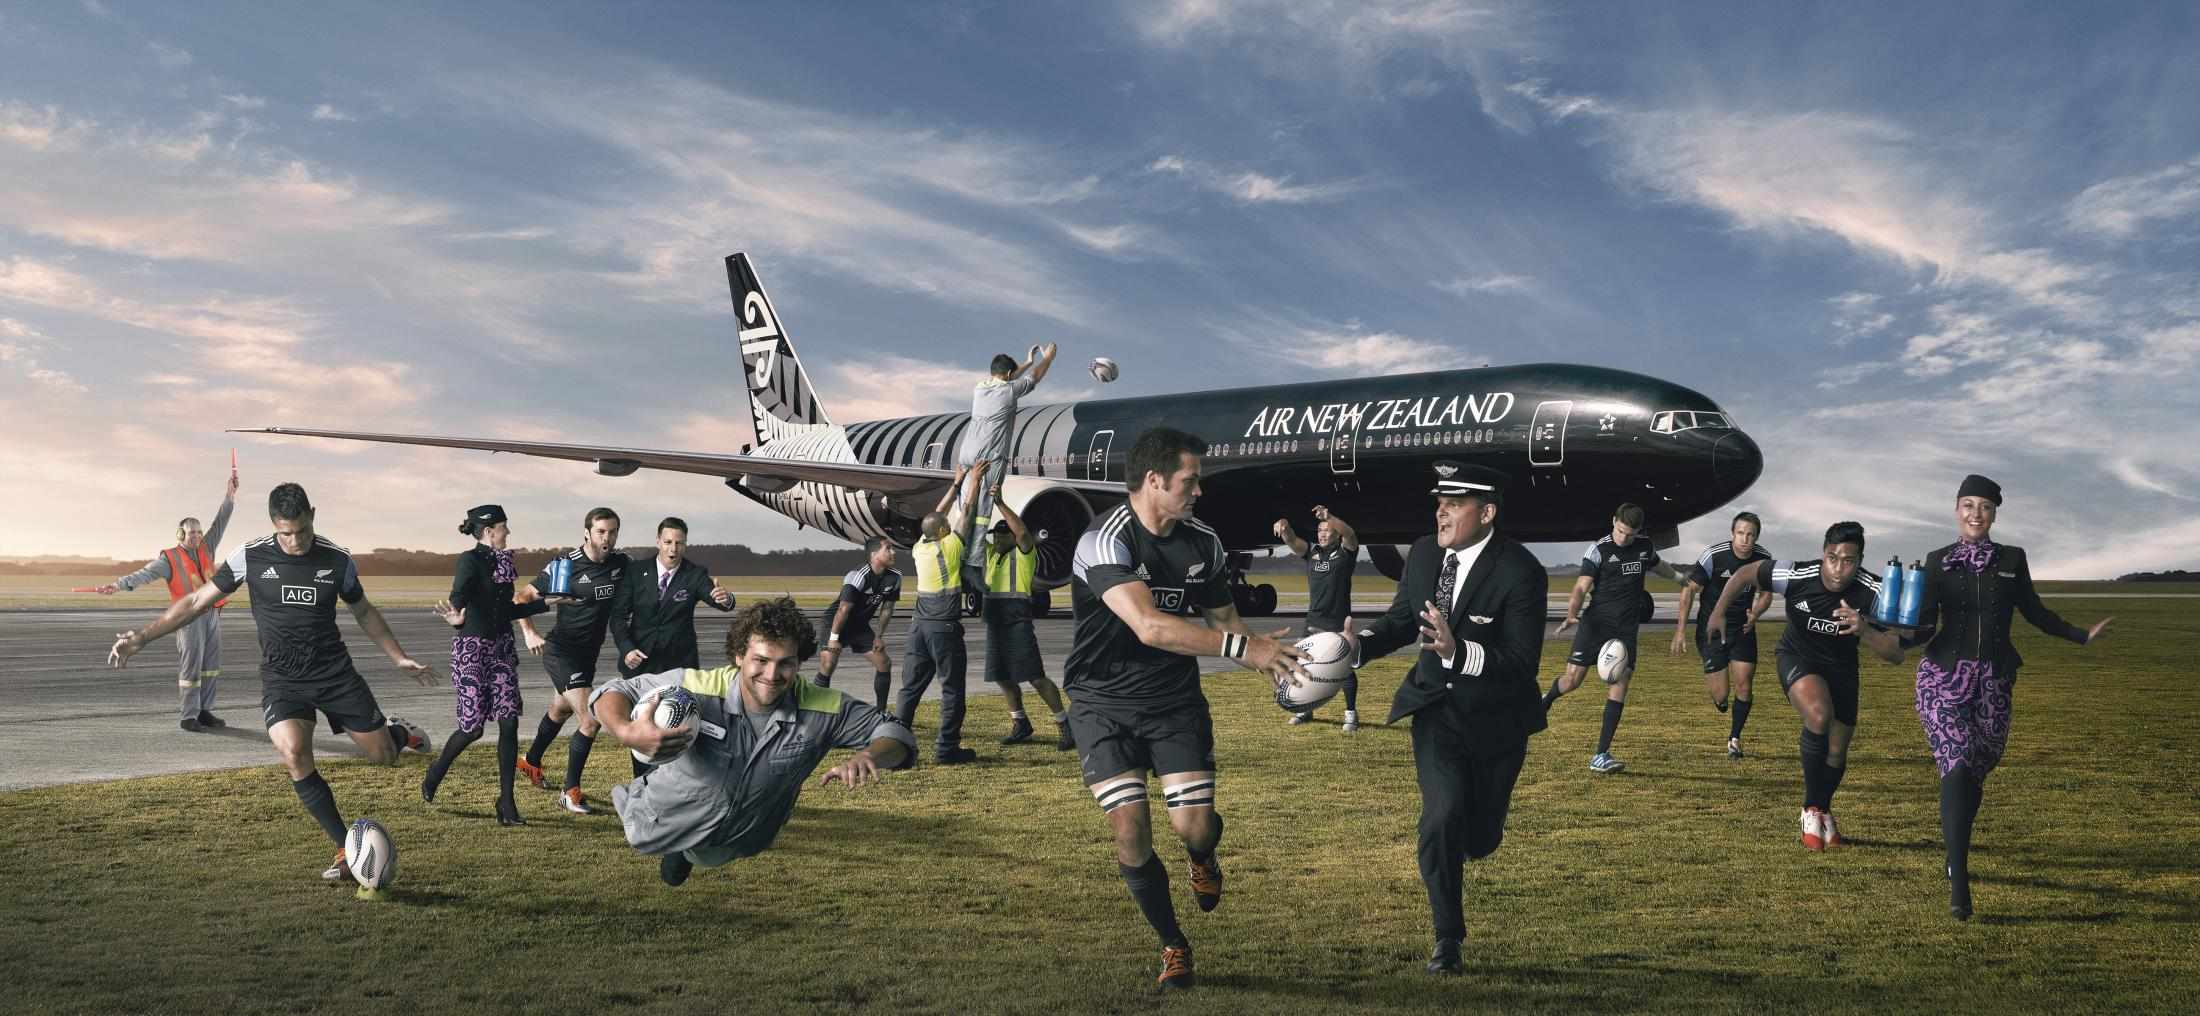 Air New Zealand - Fight Song - YouTube